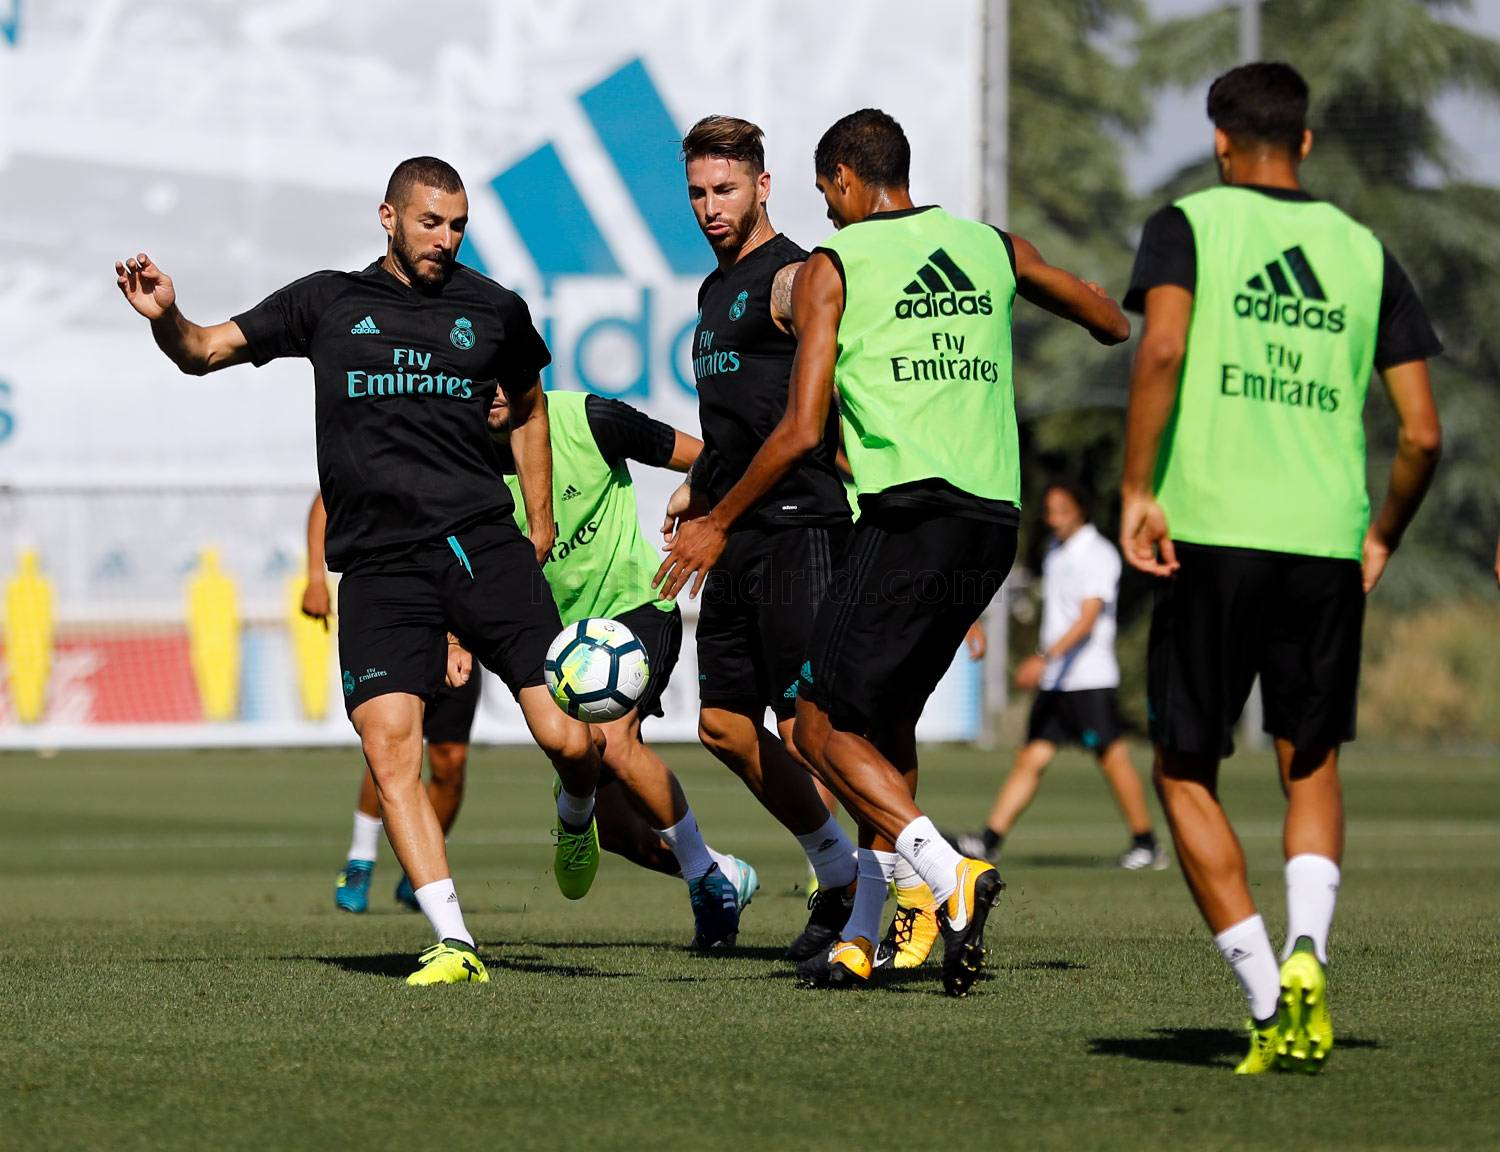 Real Madrid - Entrenamiento del Real Madrid - 19-08-2017